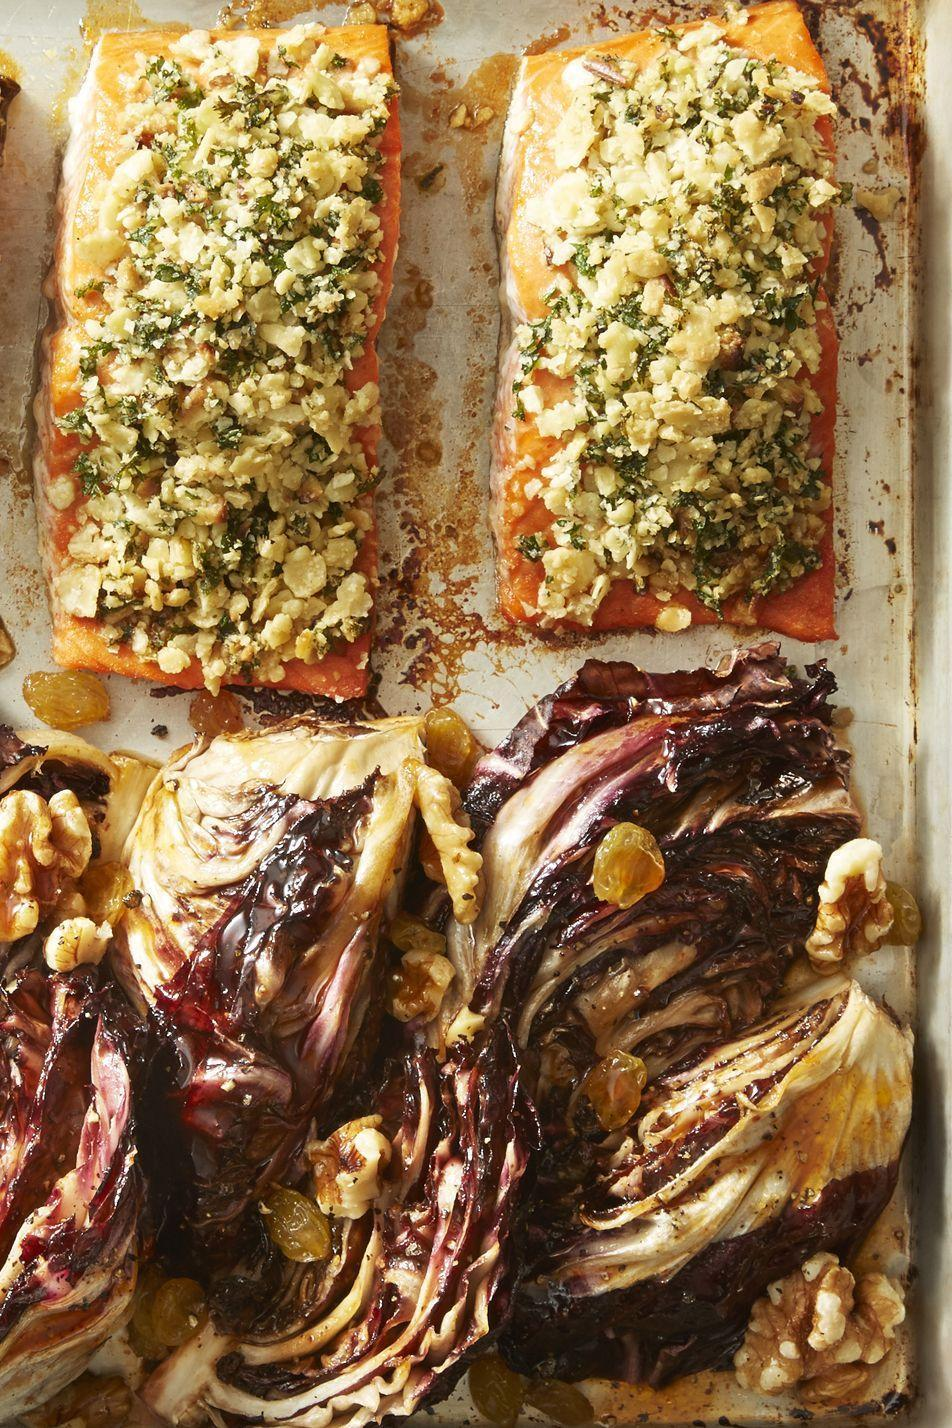 """<p>Give plain old salmon an upgrade with with matzo breadcrumbs, maple syrup, hot sauce and brown-sugar glazed radicchio.</p><p><em><a href=""""https://www.goodhousekeeping.com/food-recipes/a43218/matzo-crusted-salmon-glazed-radicchio-recipe/"""" rel=""""nofollow noopener"""" target=""""_blank"""" data-ylk=""""slk:Get the recipe for Matzo-Crusted Salmon with Glazed Radicchio »"""" class=""""link rapid-noclick-resp"""">Get the recipe for Matzo-Crusted Salmon with Glazed Radicchio »</a></em></p>"""